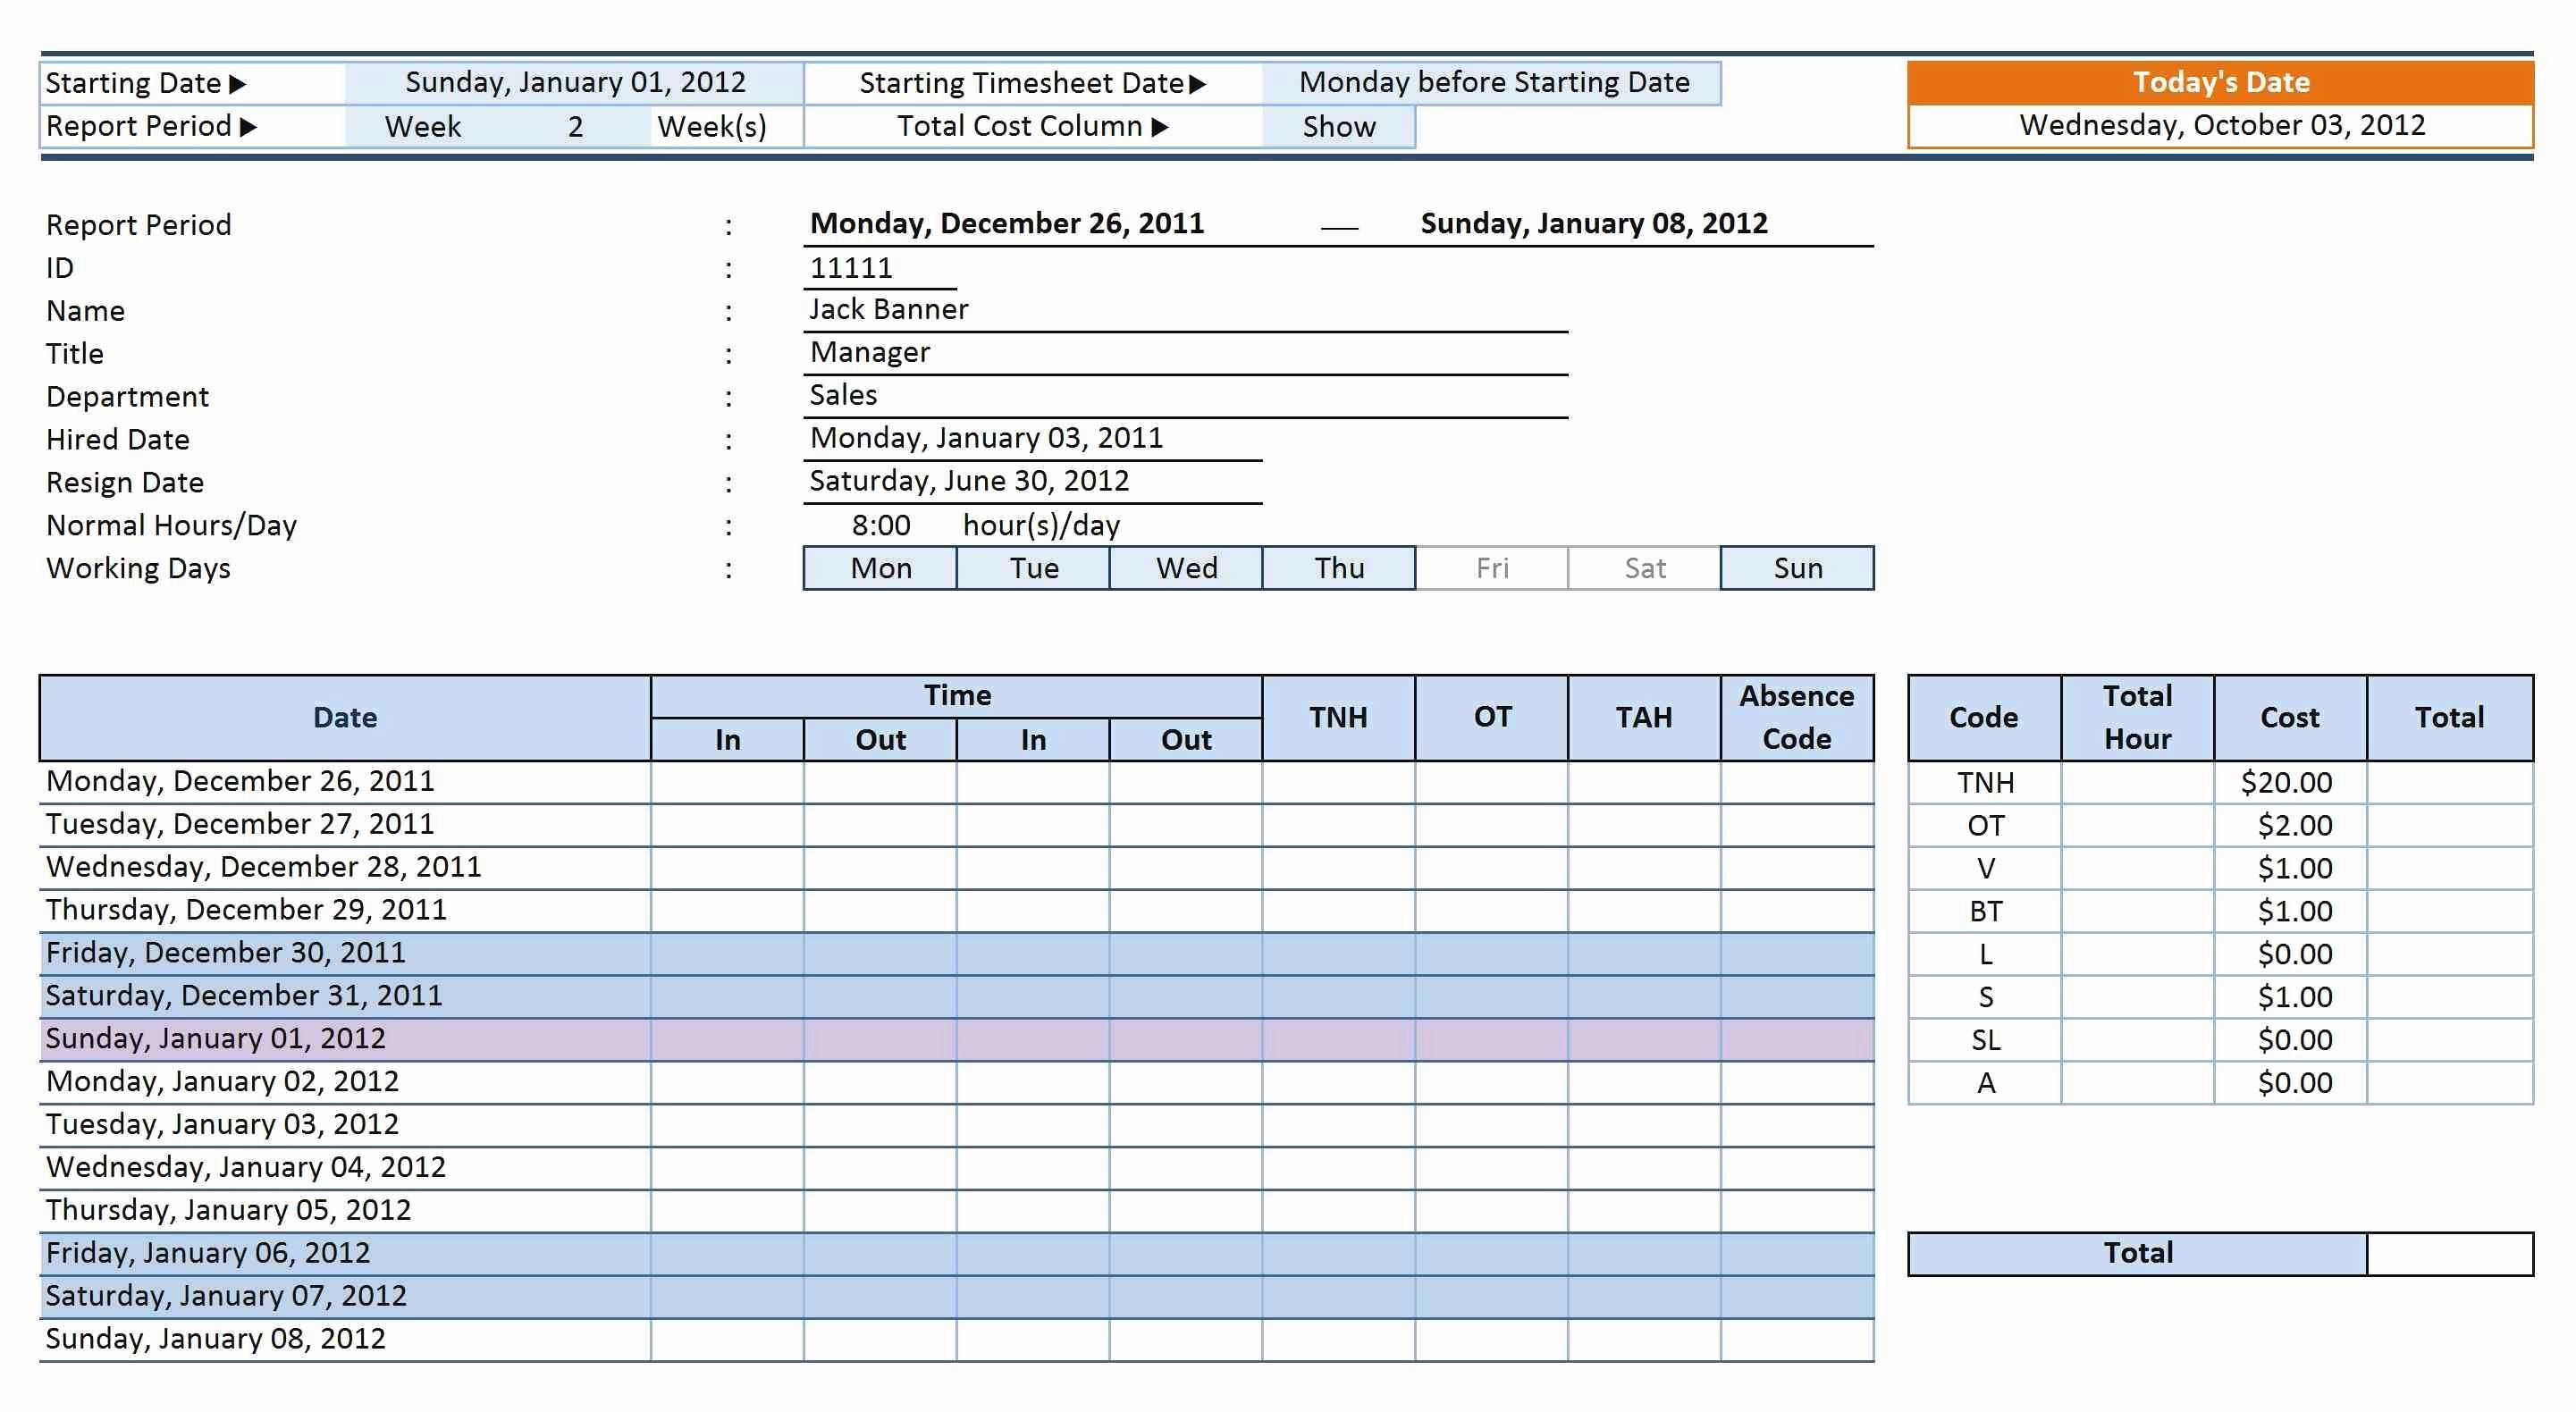 Employee Performance Review Template Excel Luxury Employee Performance Review Template Excel Unique